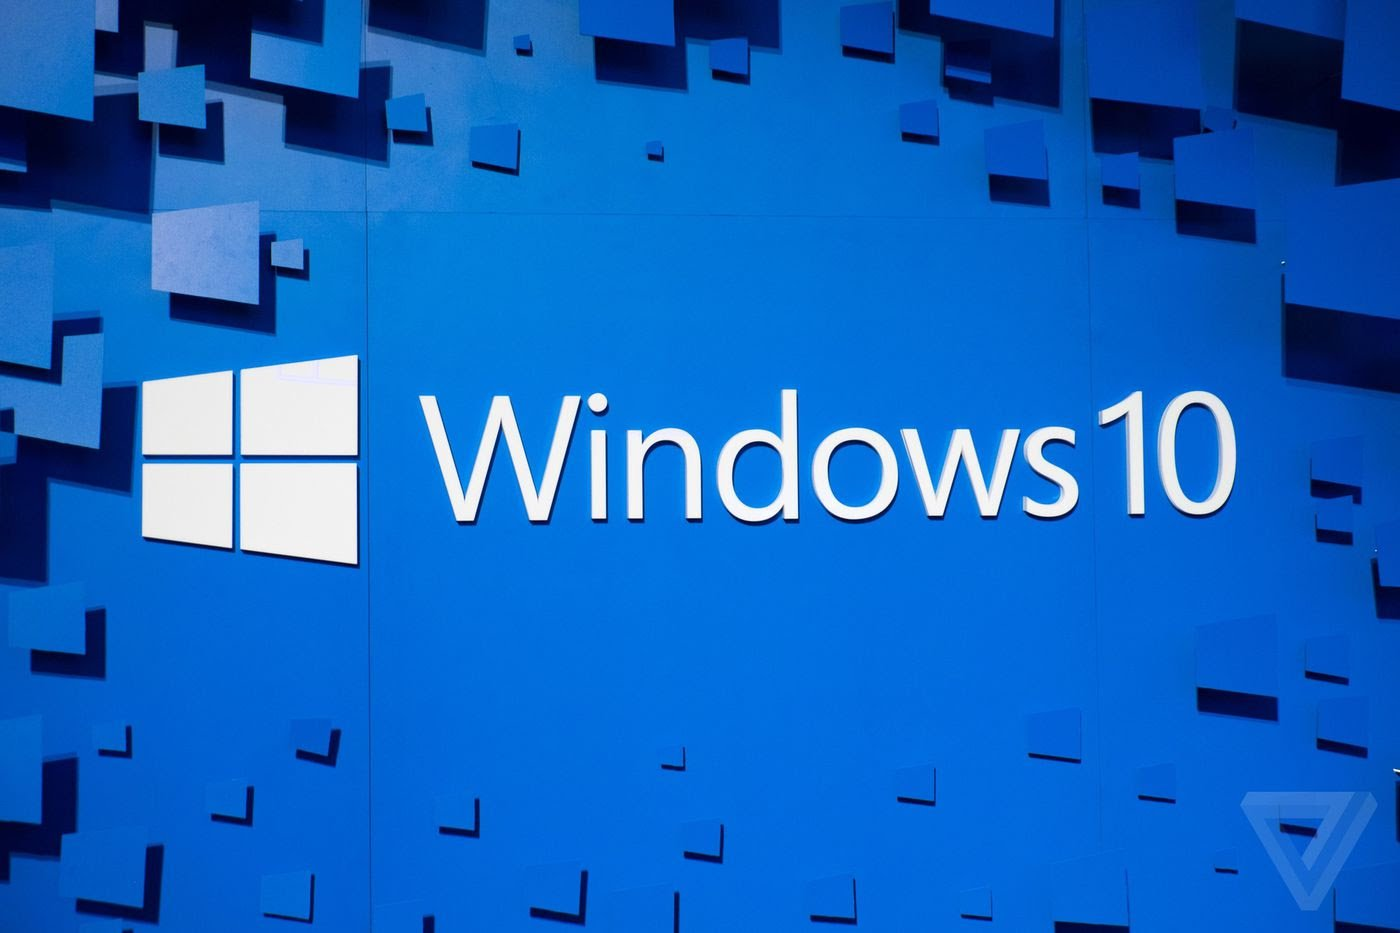 Microsoft confirms audio problems on Windows 10, offers fix